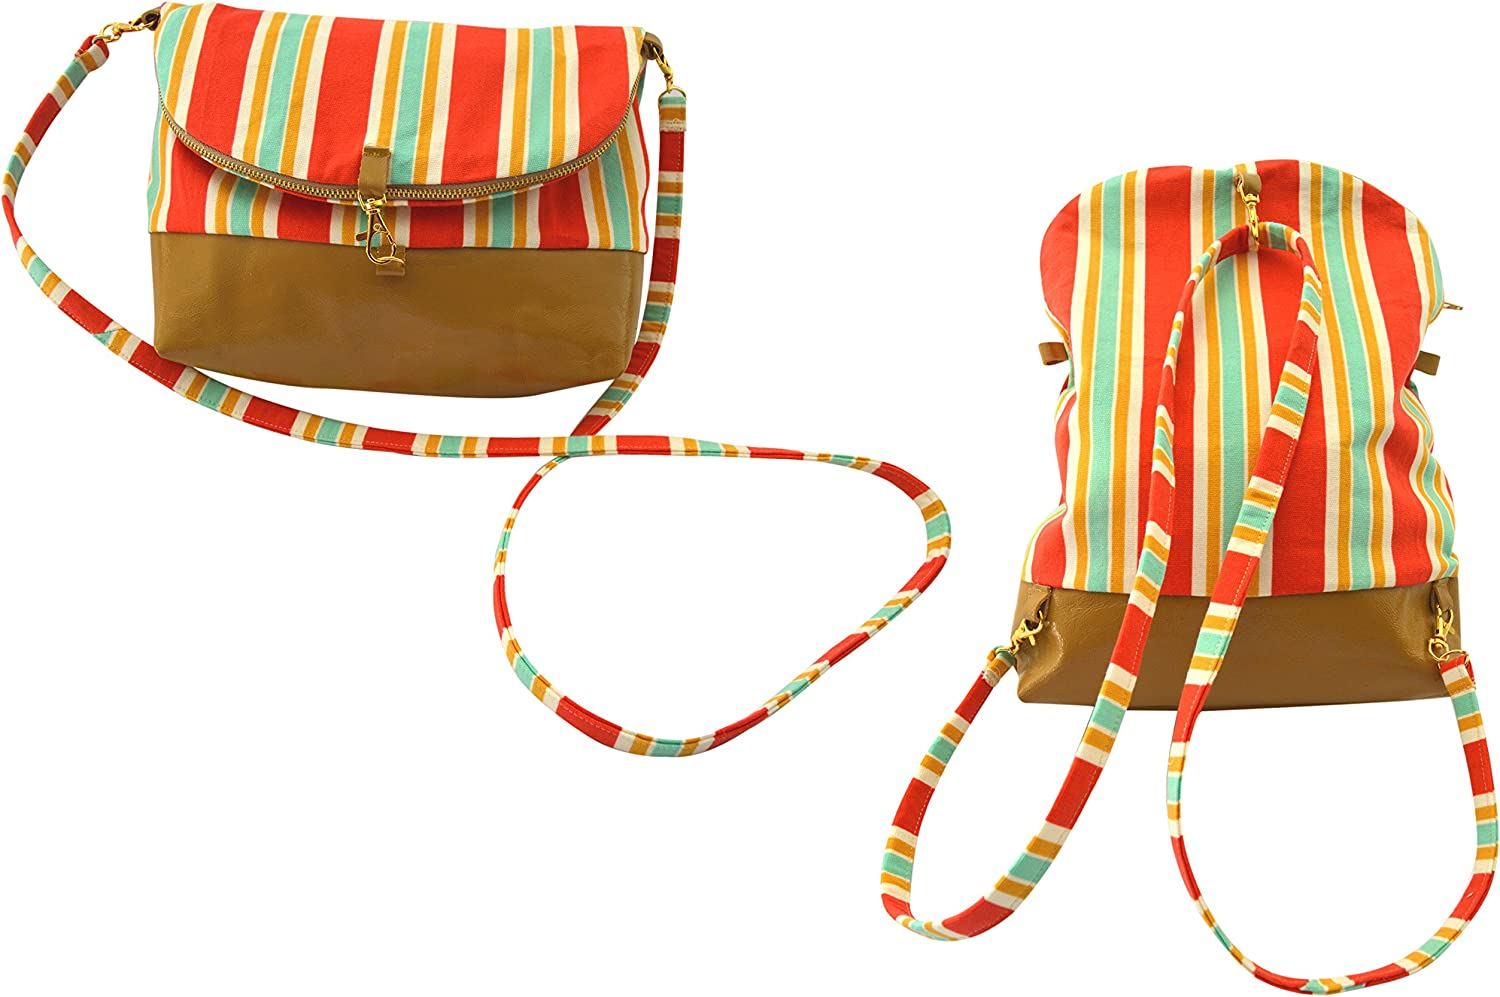 Congreenible Backpack Crossbody Bags Genuine Leather  Canvas Day Bag, Purse